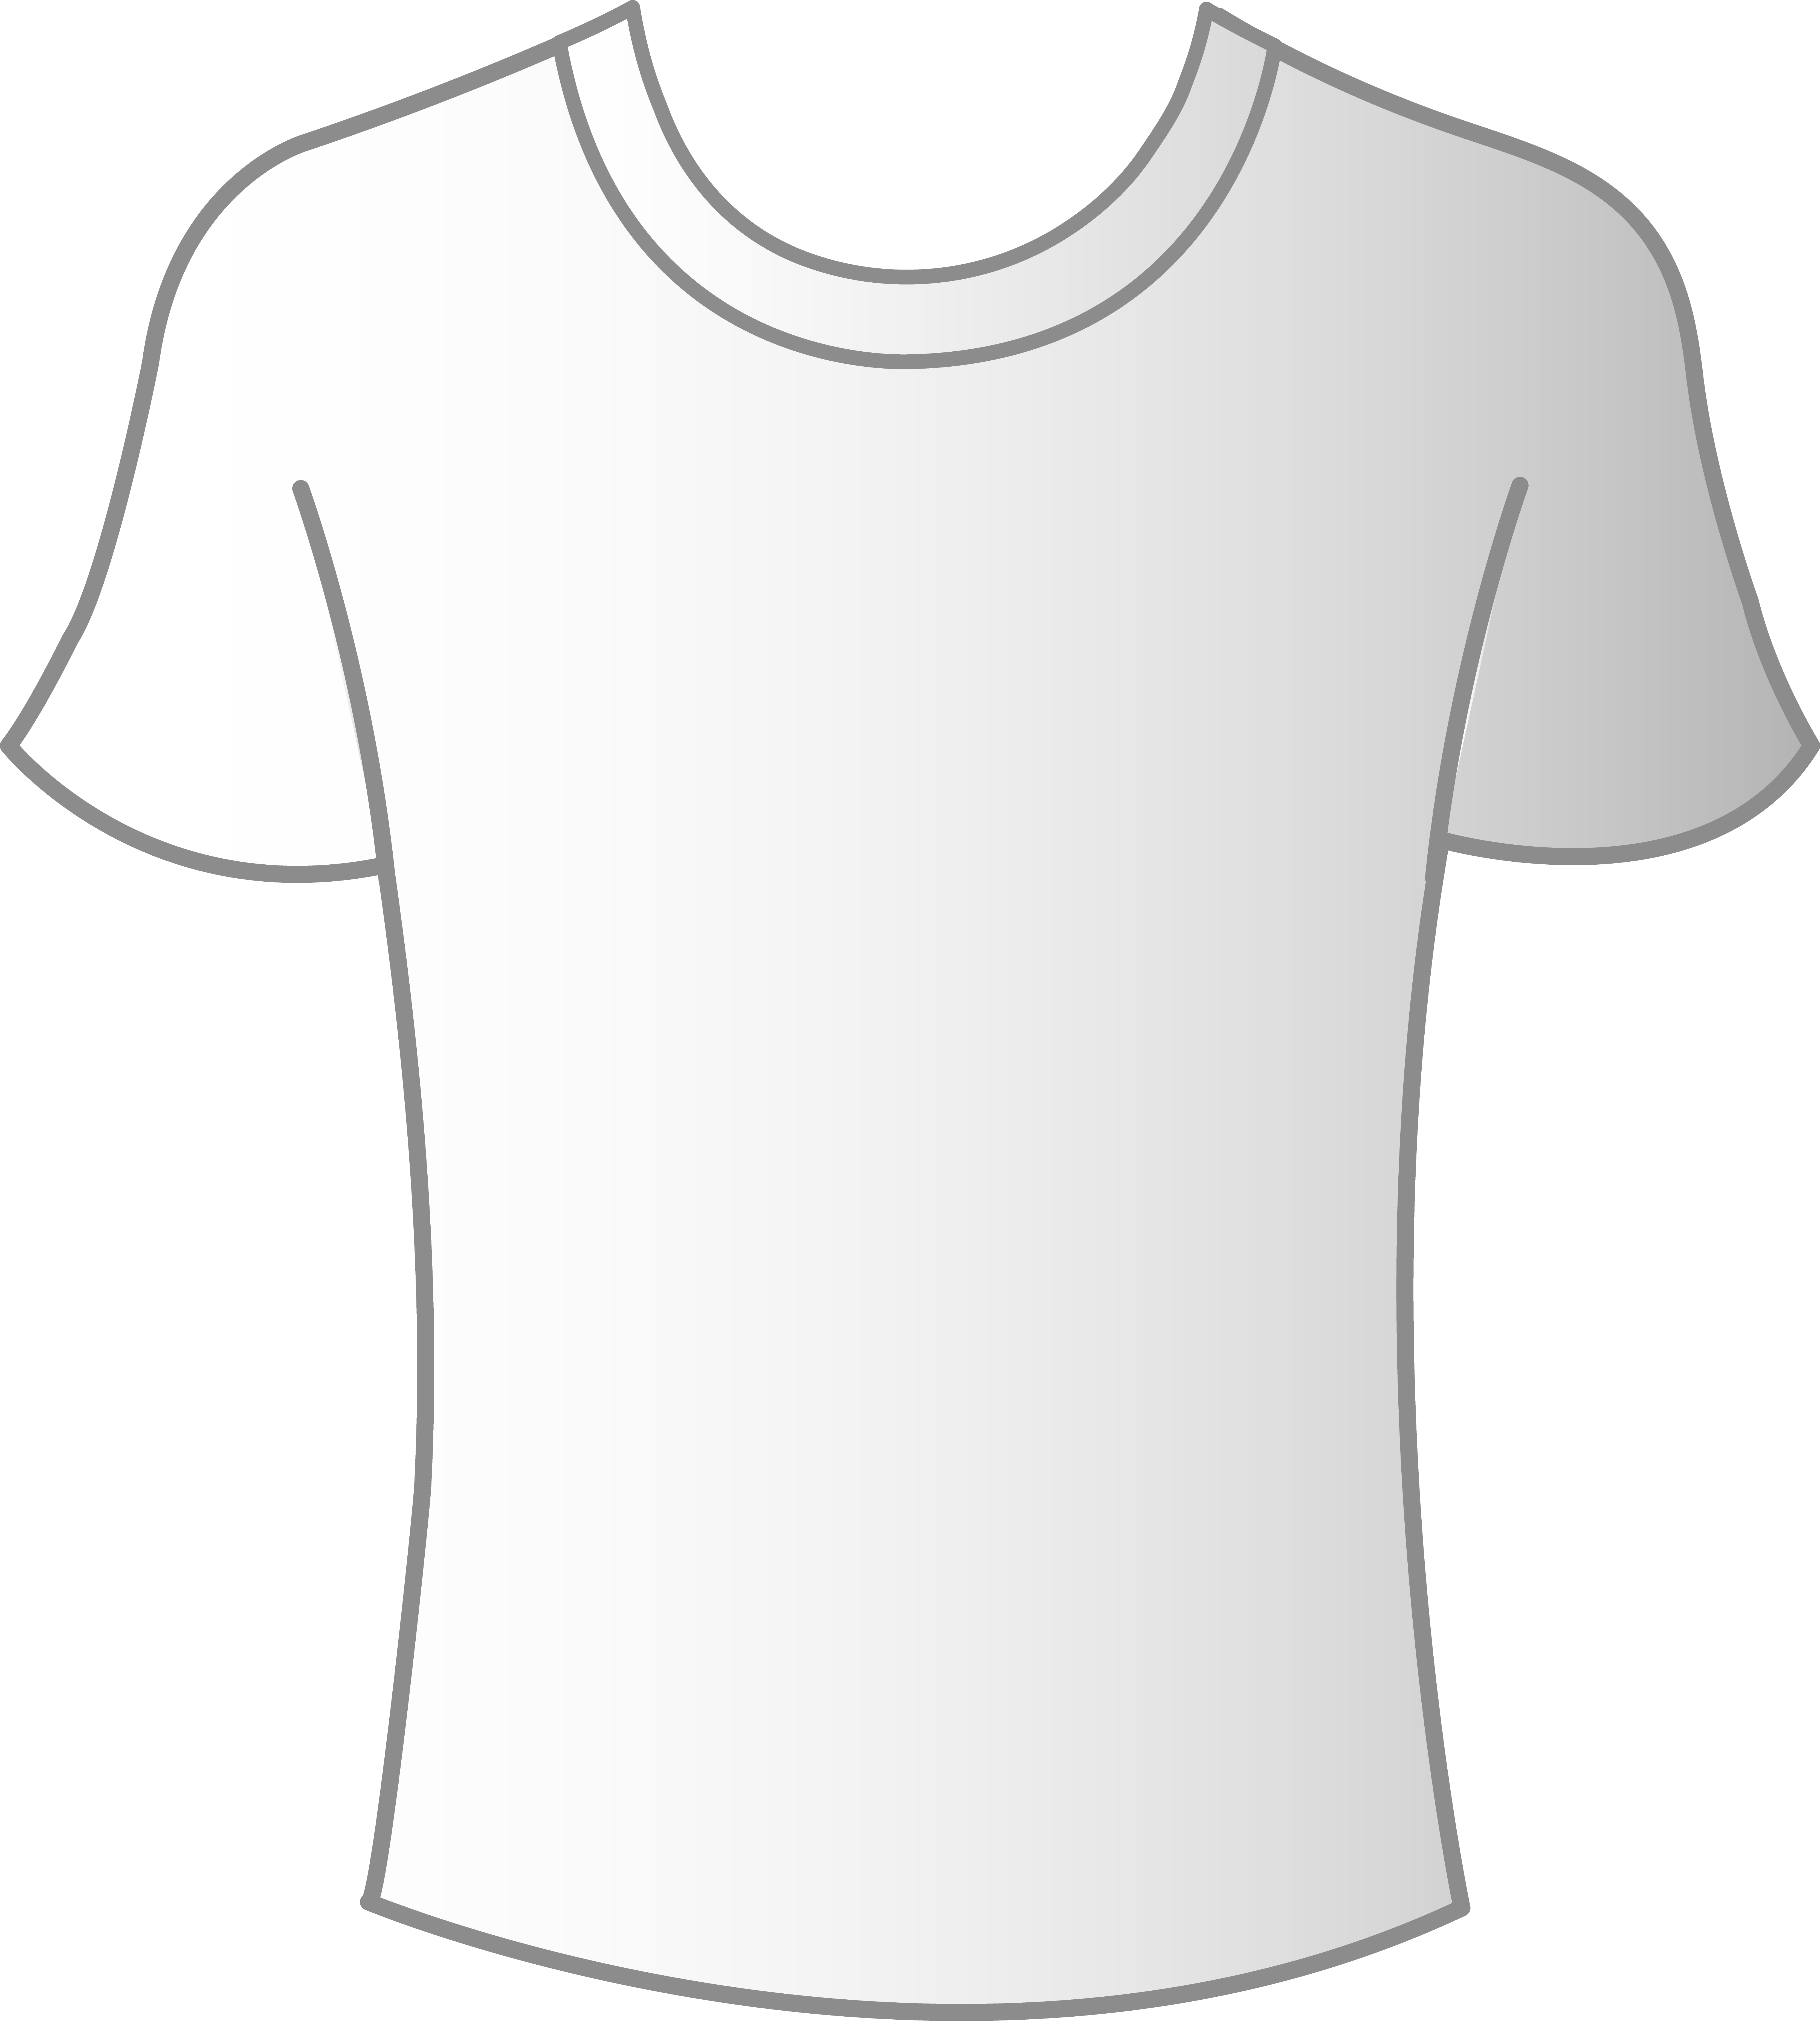 Stagger 20clipart clipart panda free clipart images for Plain t shirts to print on